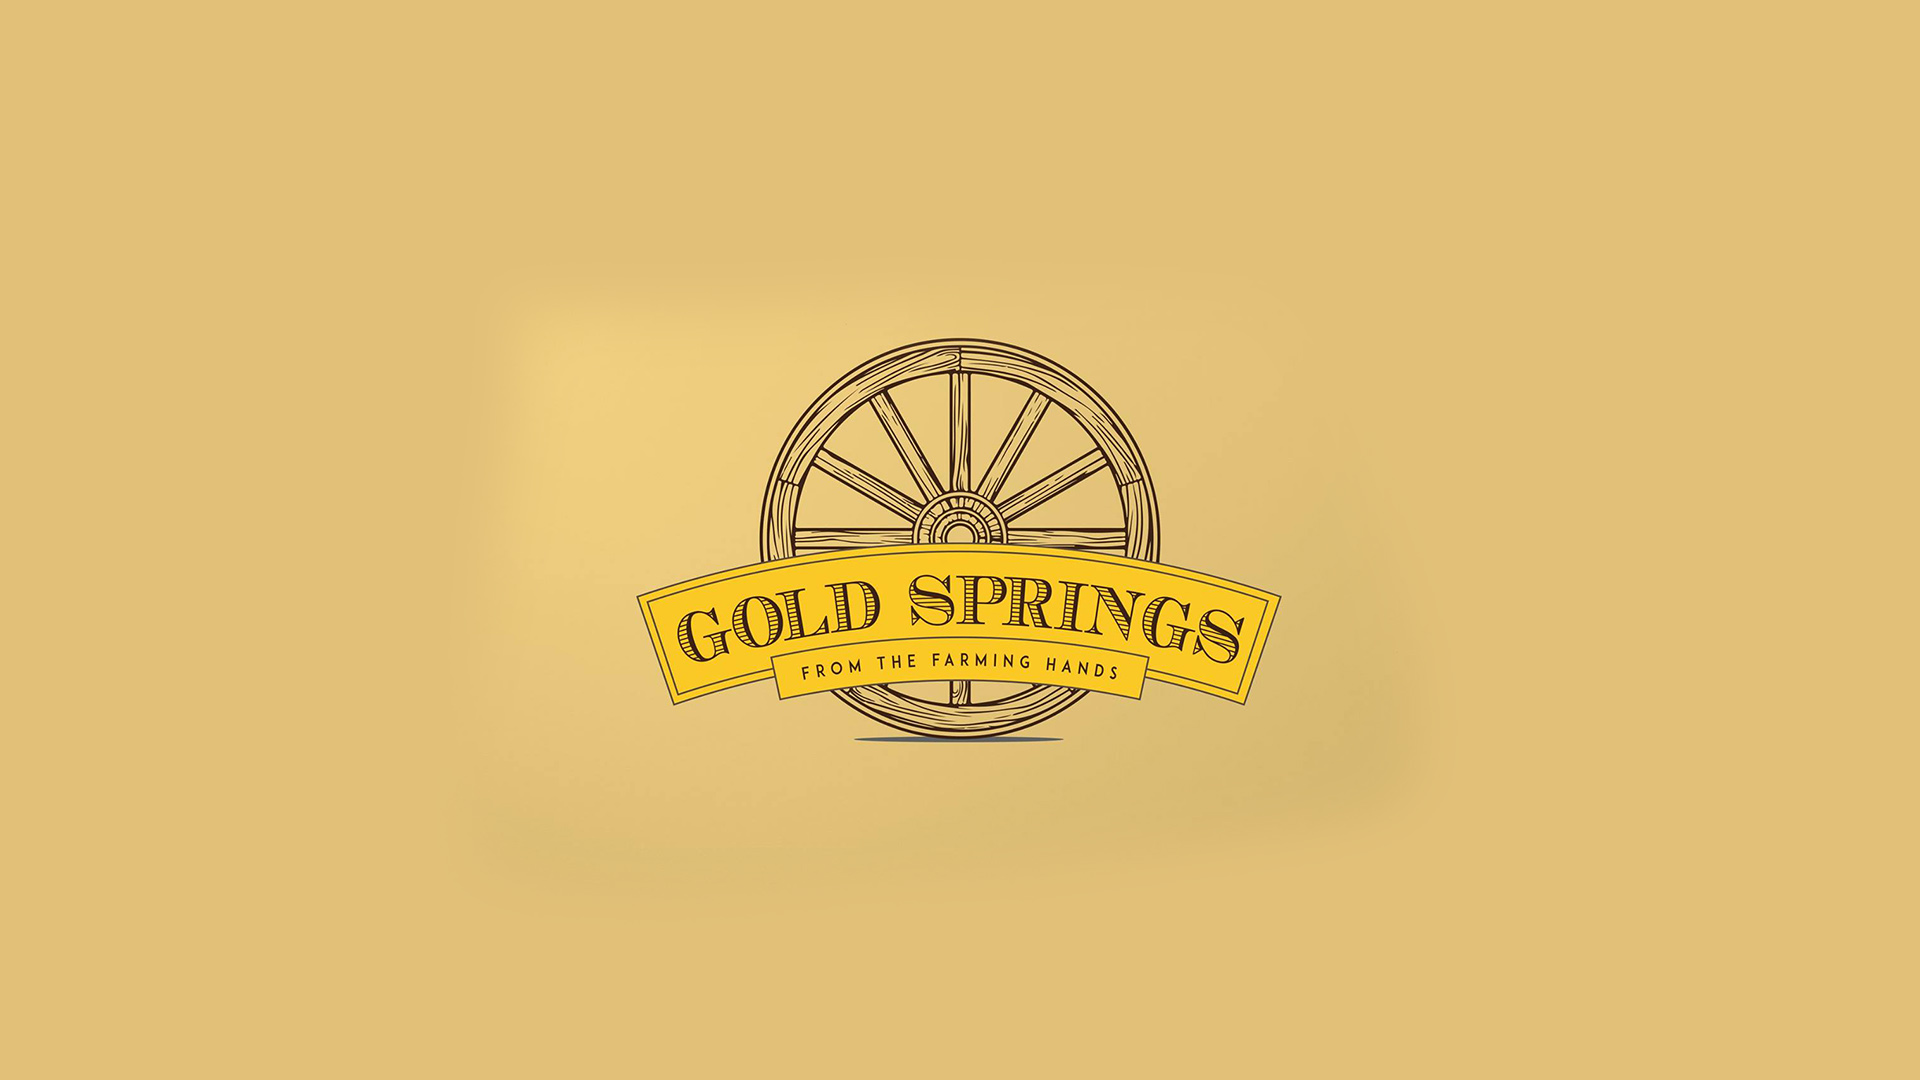 Gold Springs